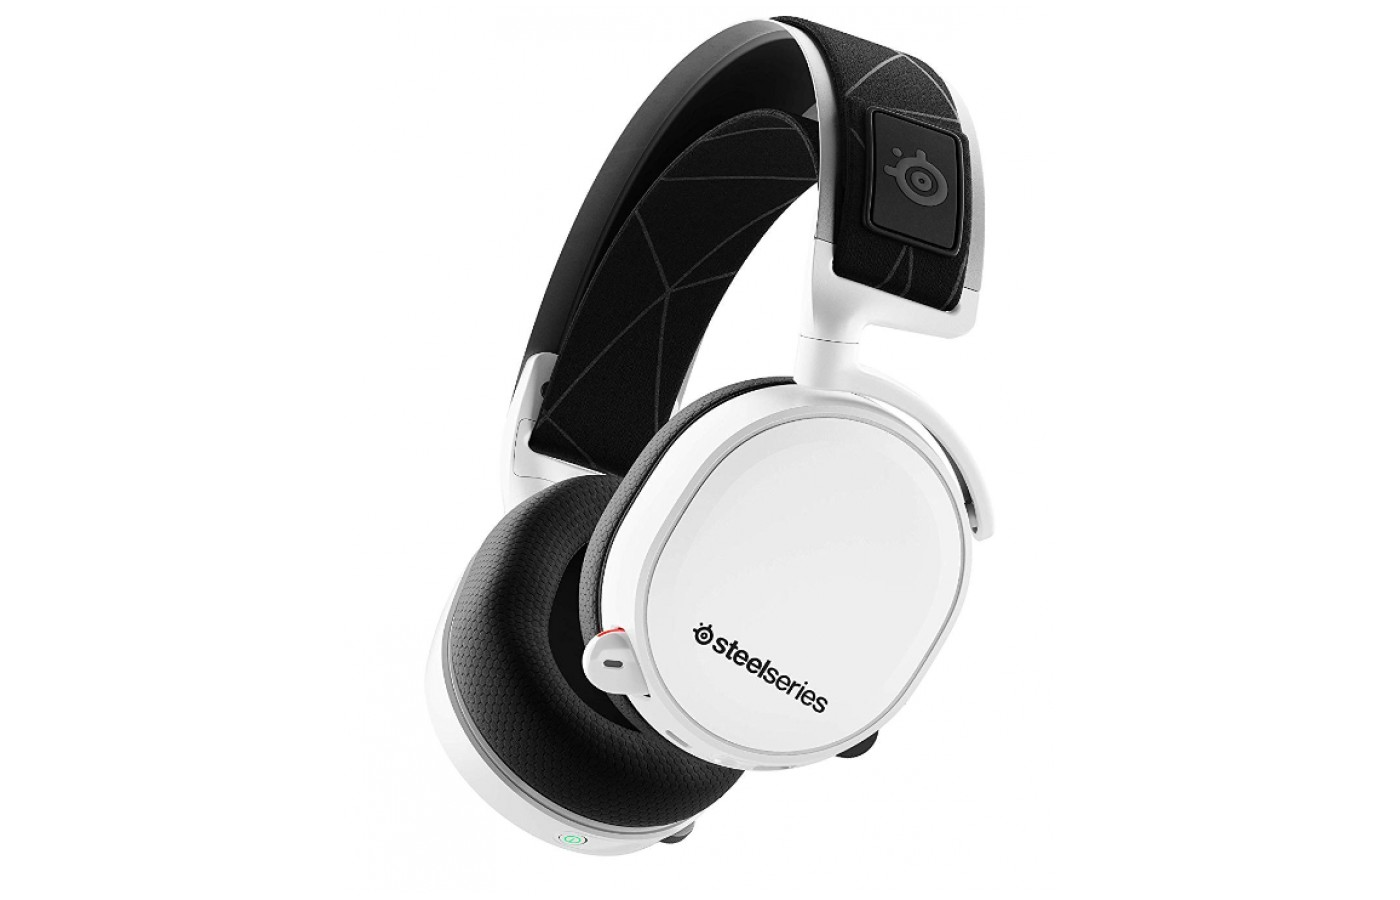 This is a great wireless headset for the price.